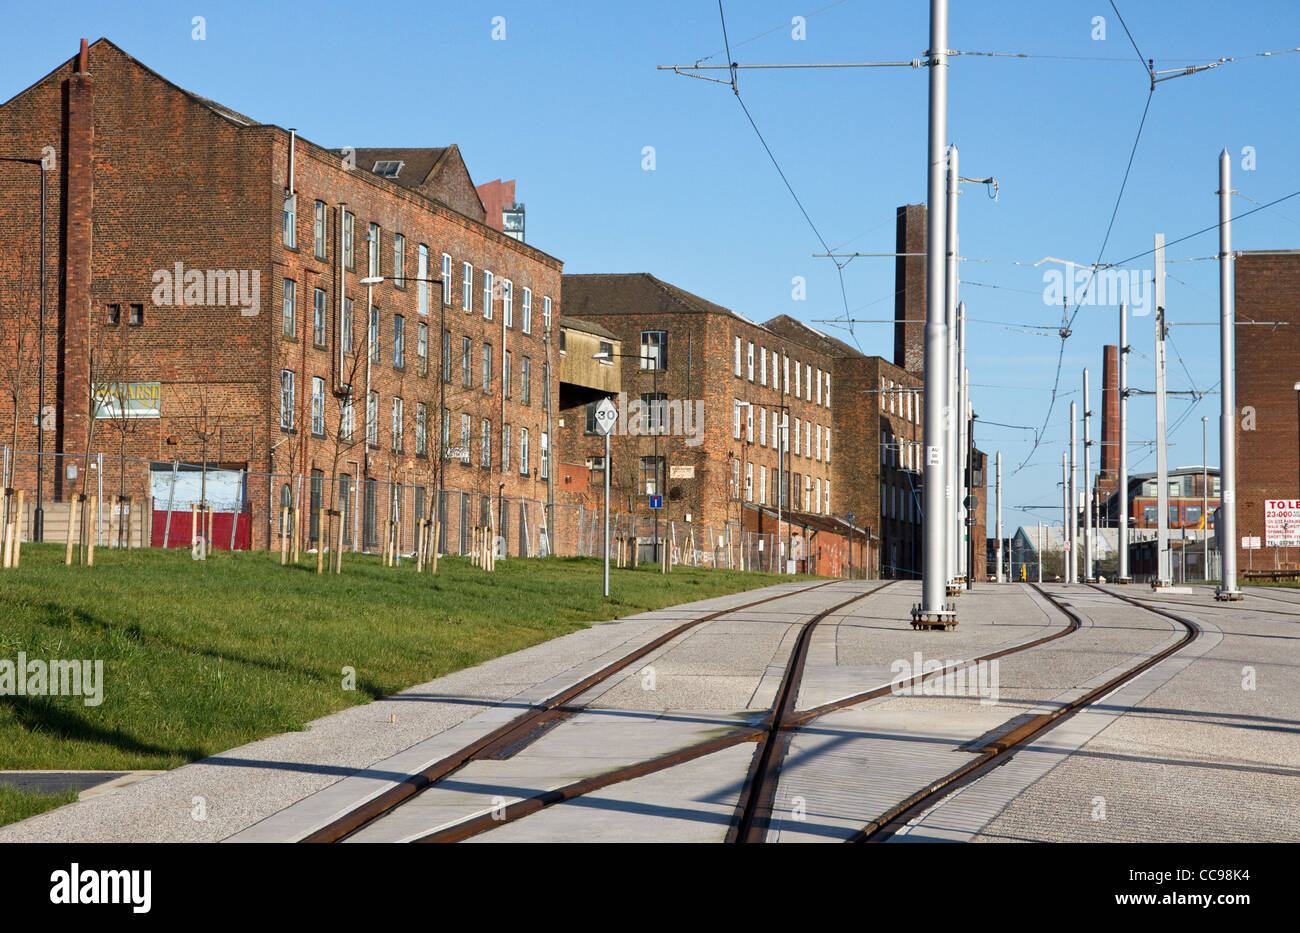 New Metrolink East Manchester Line line to Ashton passes old cotton mills (Chapeltown St ), Ancoats area , Manchester,UK - Stock Image